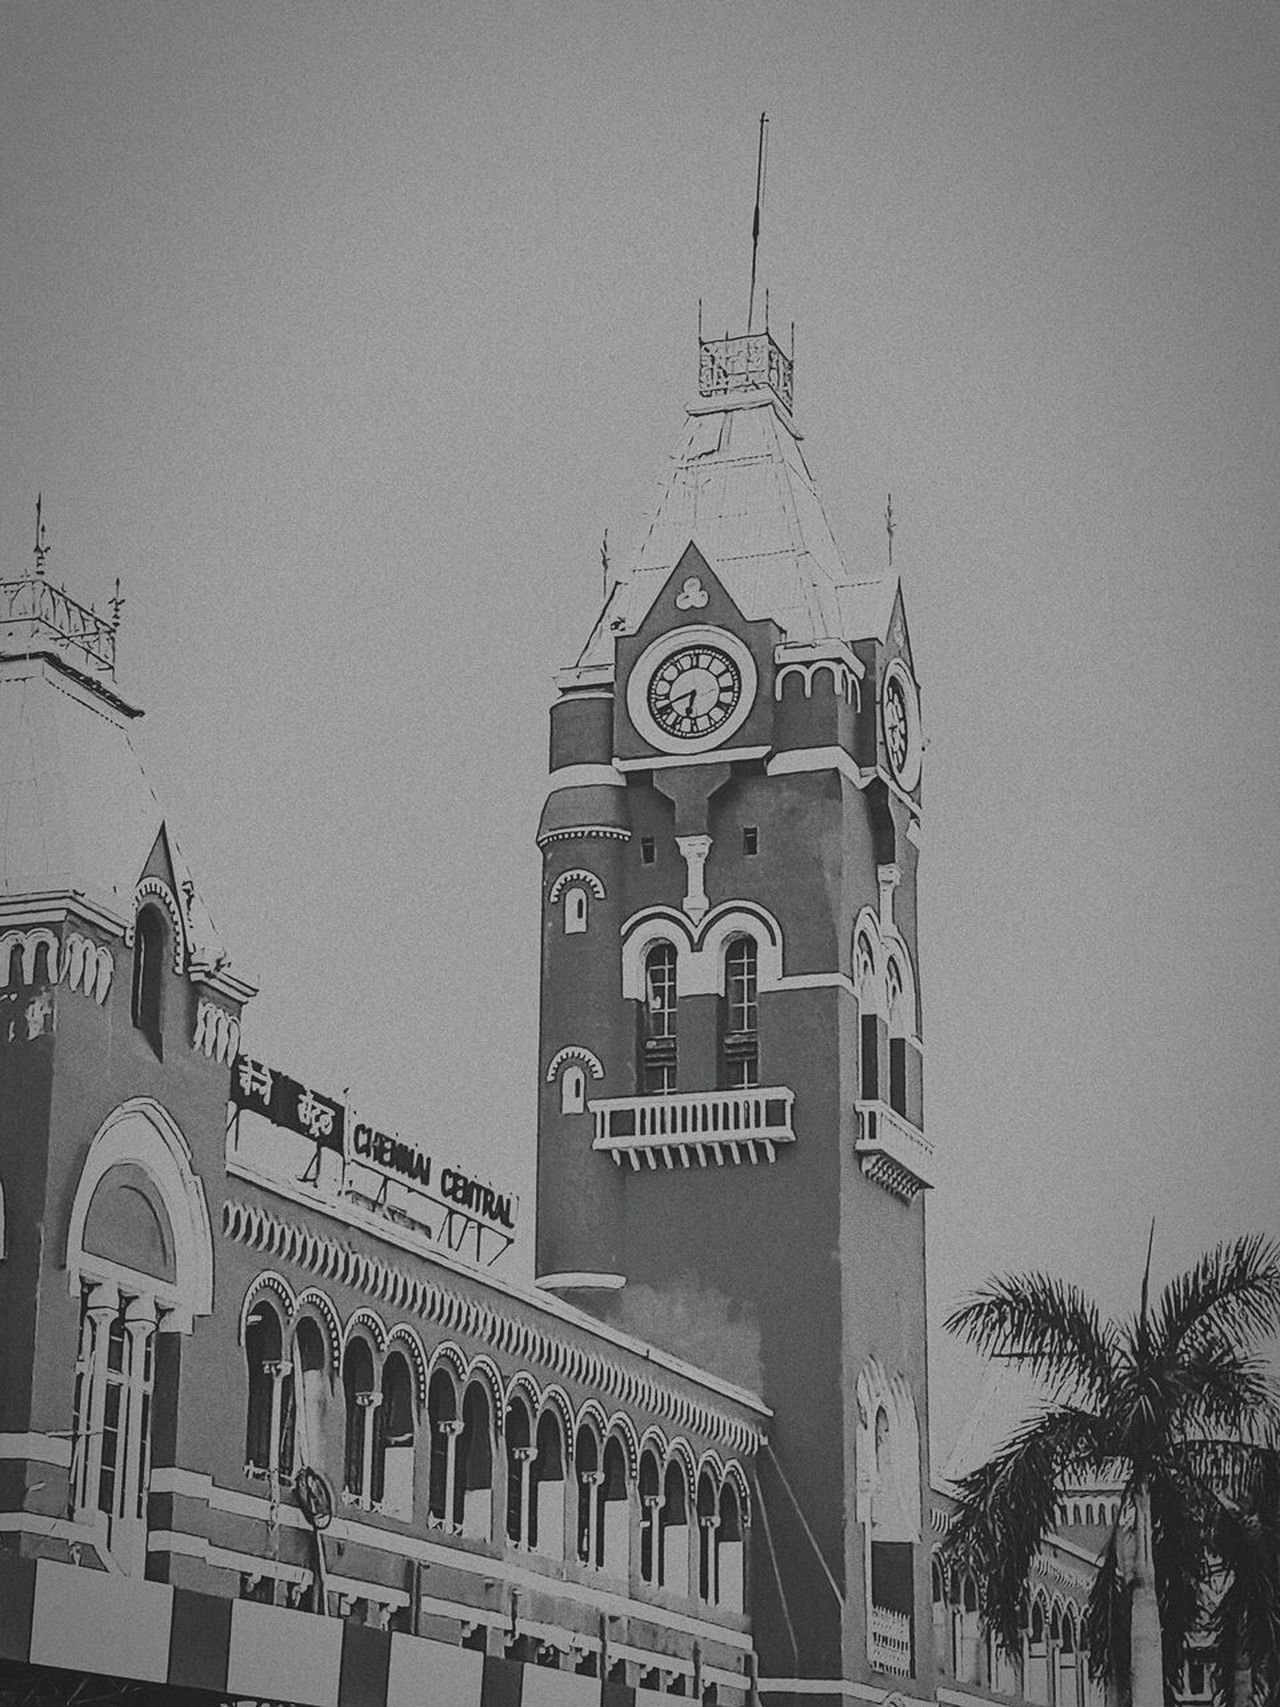 #vintagetry.. EyeEmNewHere Trainstation Architecture Built Structure History Building Exterior Outdoors Travel Destinations AI Now